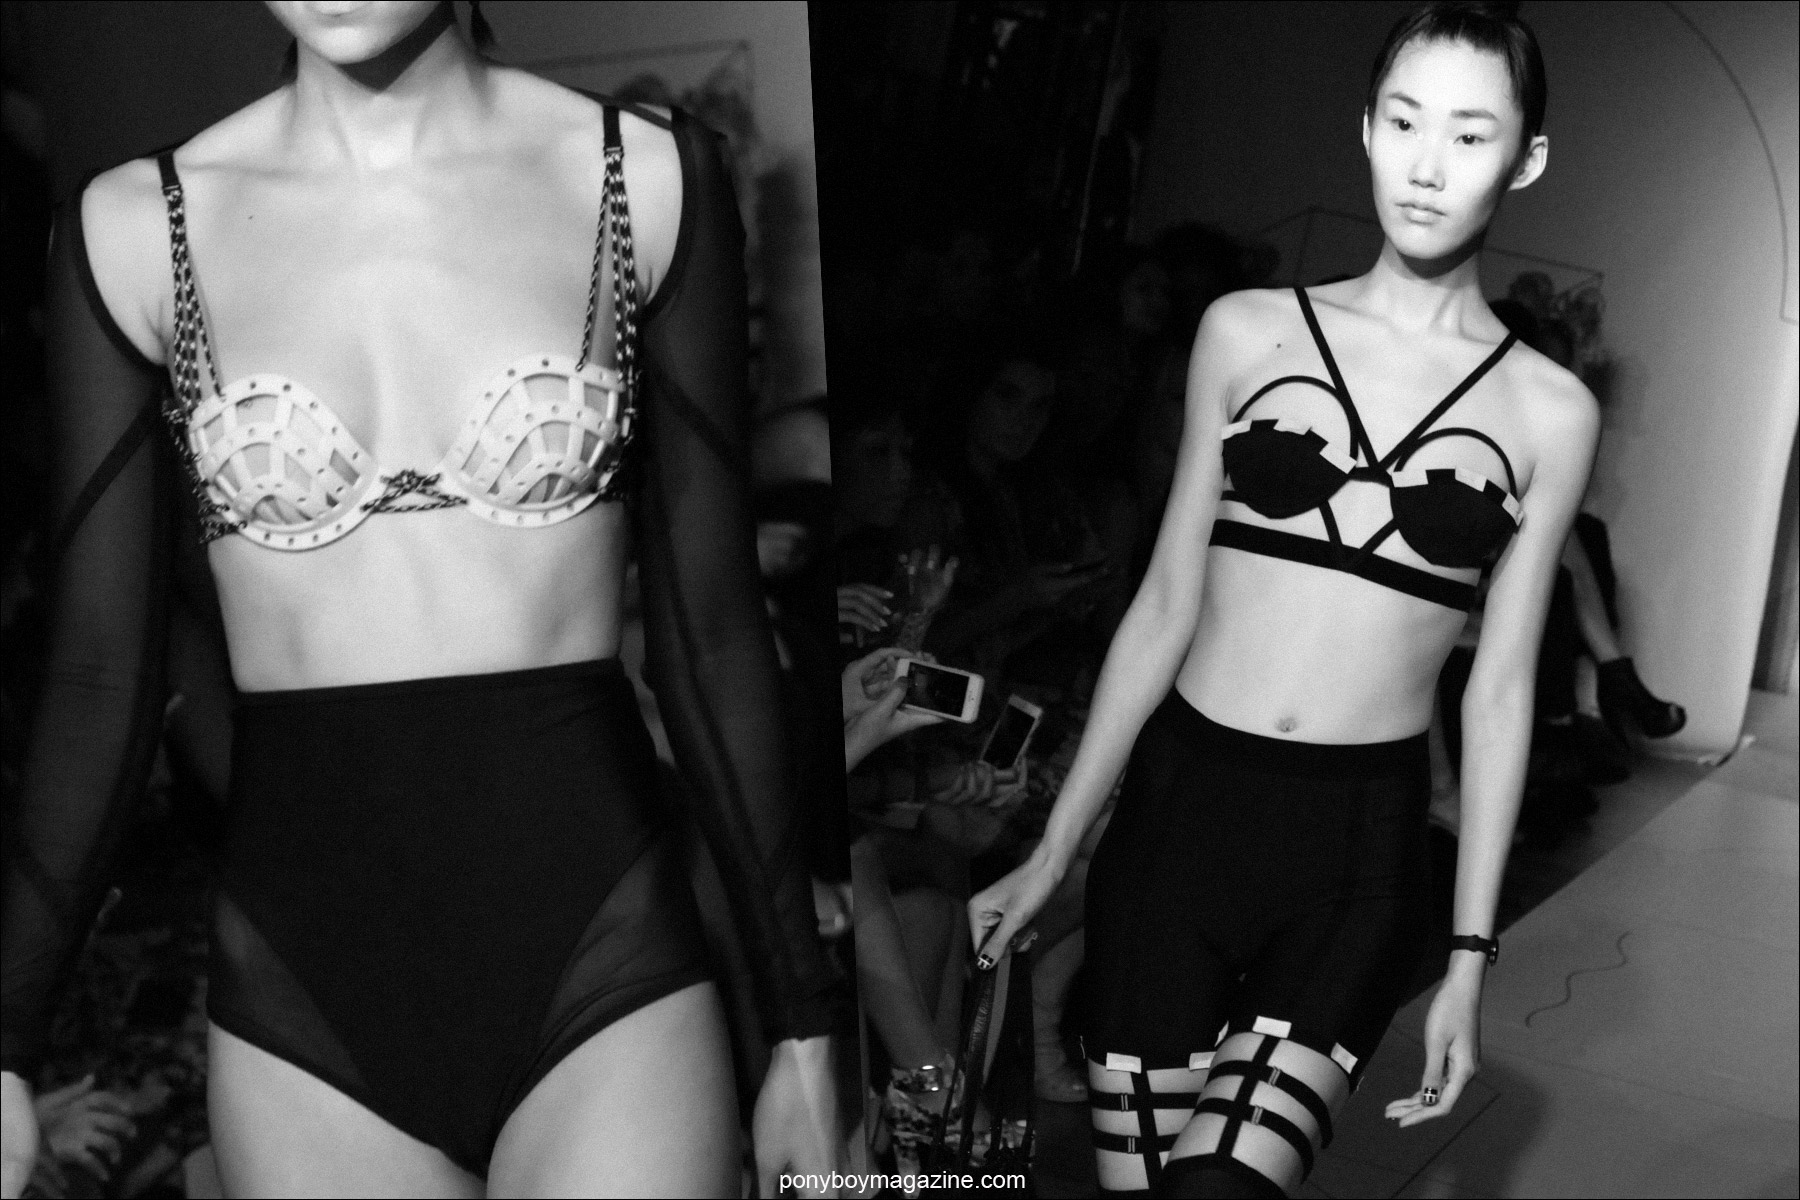 Cut-out lingerie at Chromat S/S15. Photographed by Alexander Thompson at The Standard for Ponyboy Magazine.